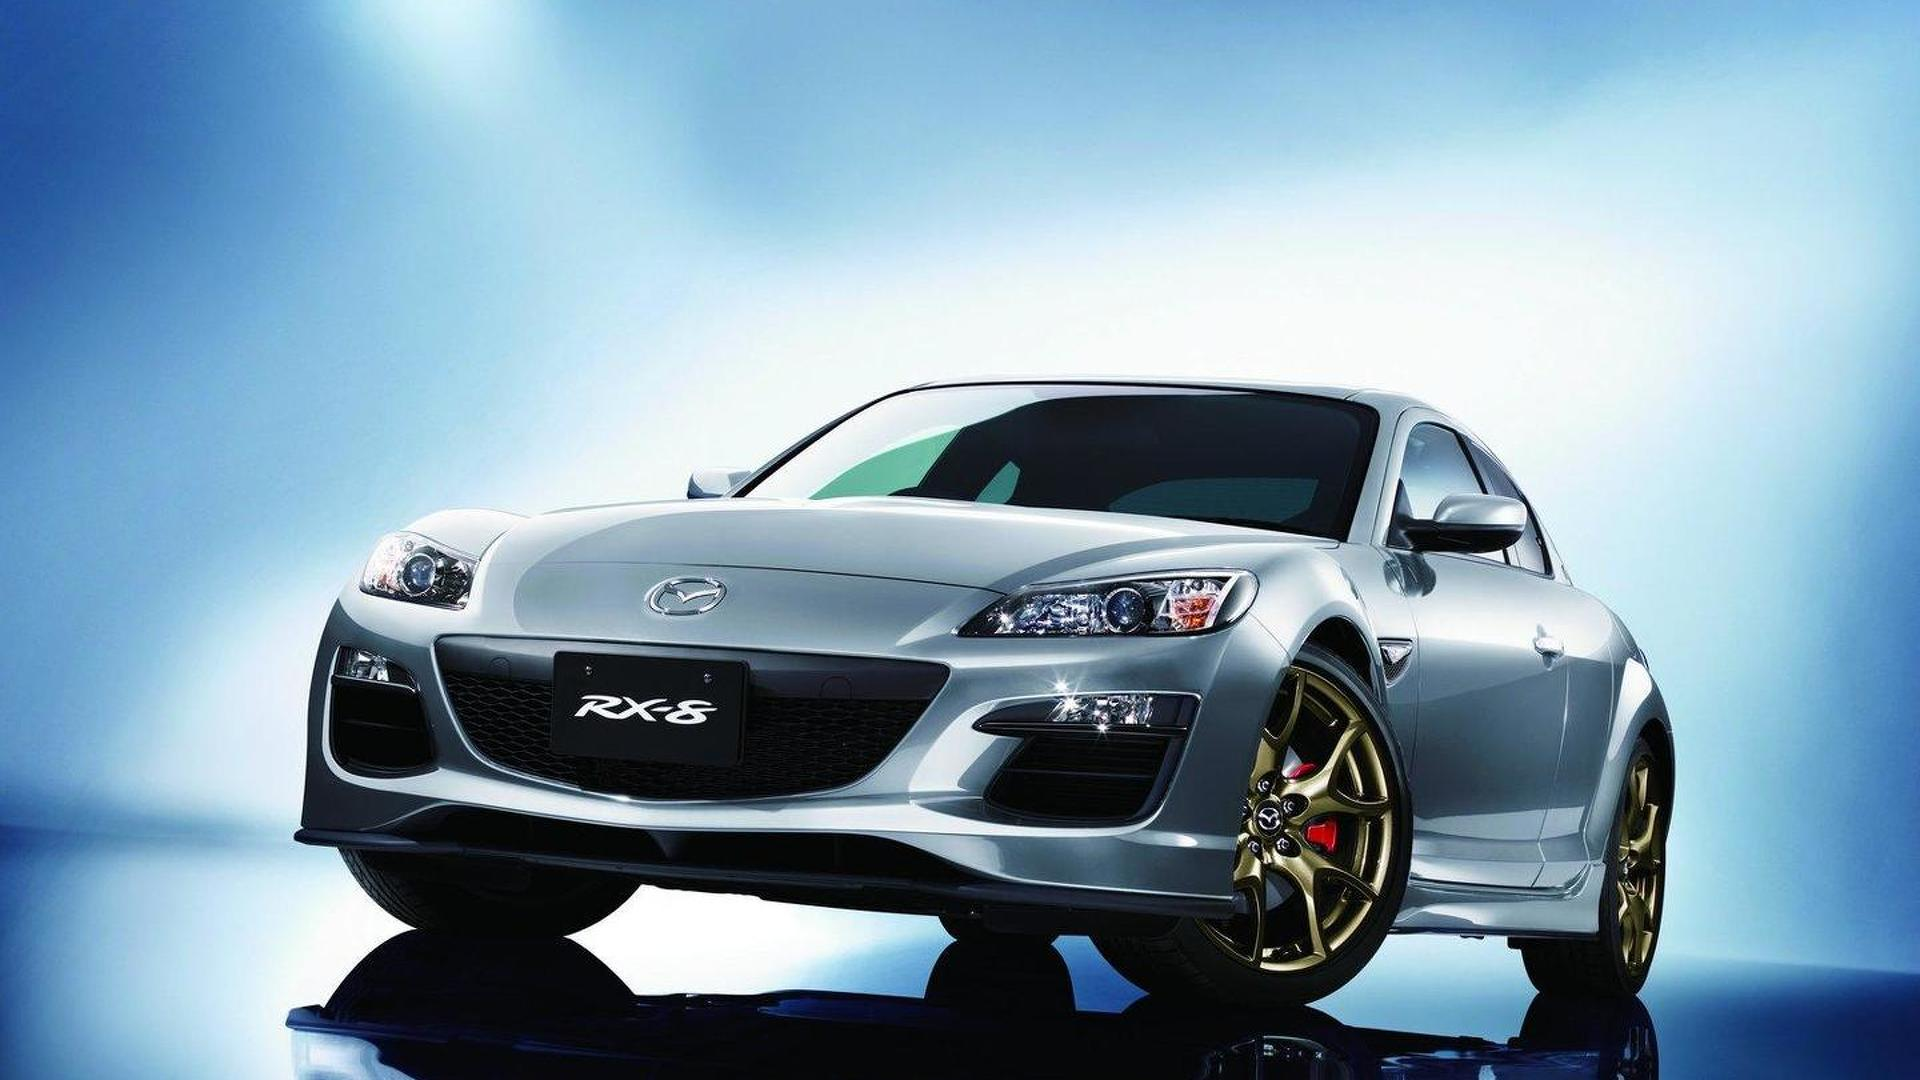 Mazda RX-8 gets a reprieve - production extended